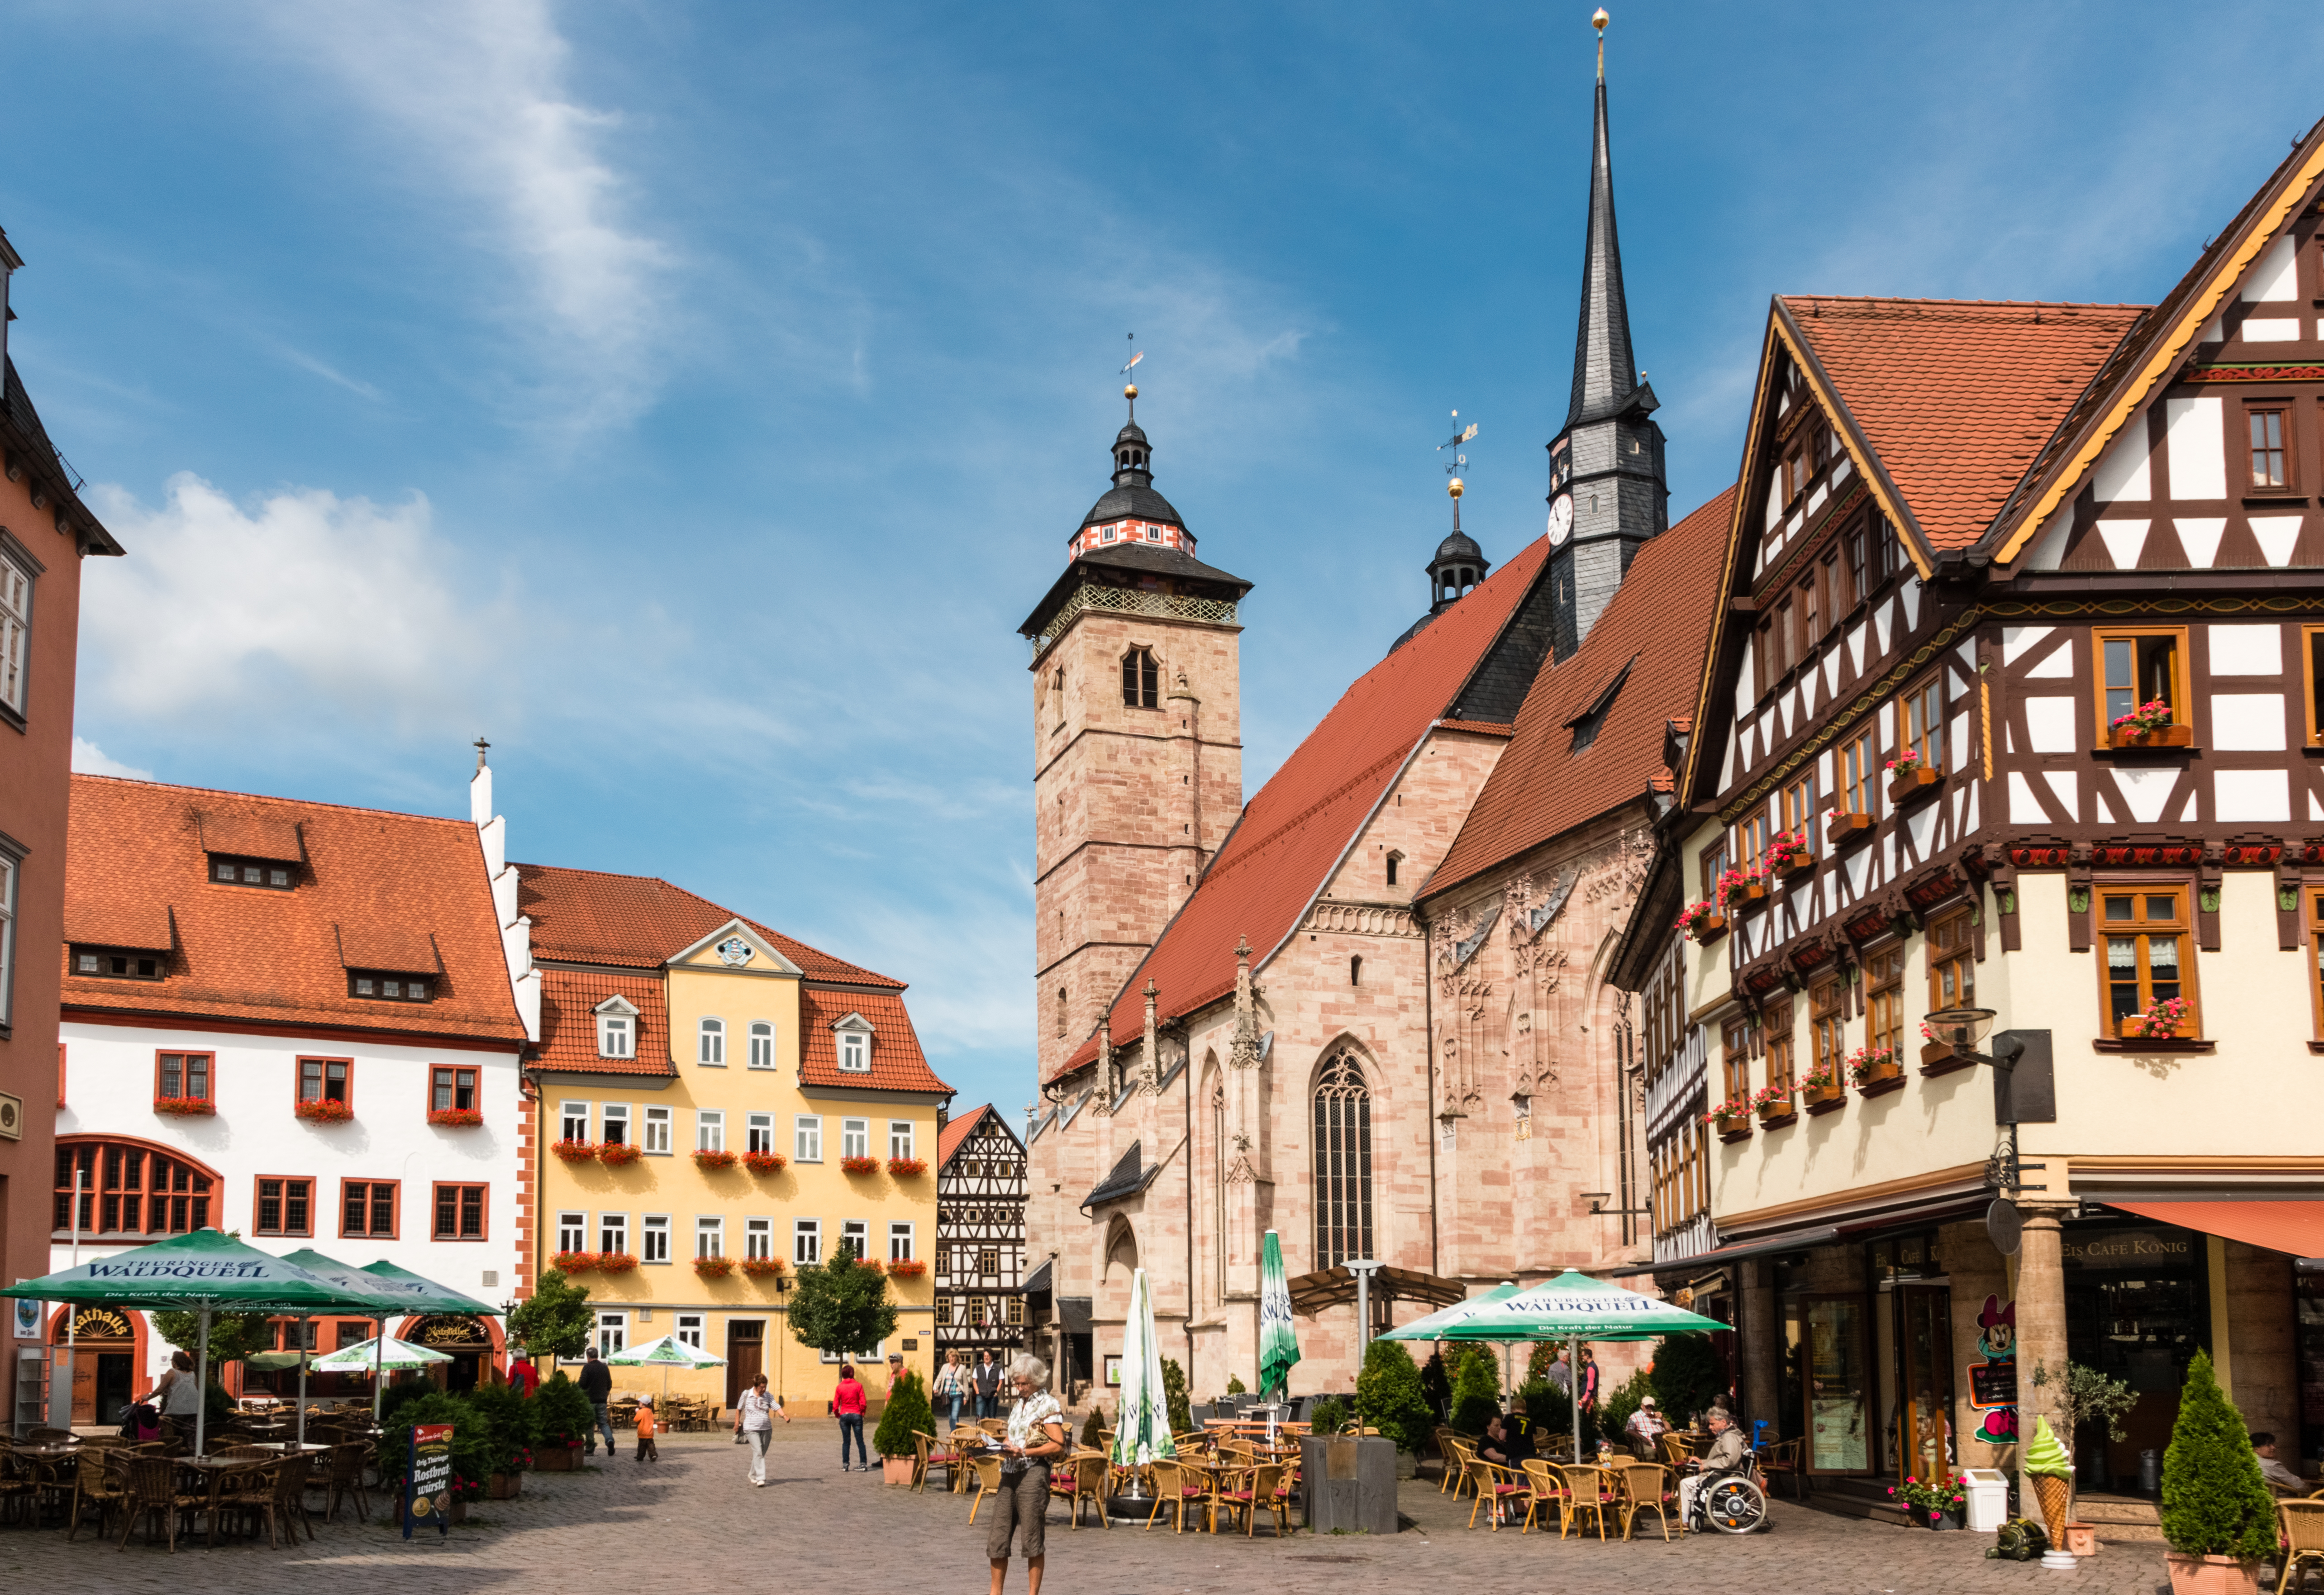 Whs Leipzig intinerary ideas for central germany rick steves travel forum